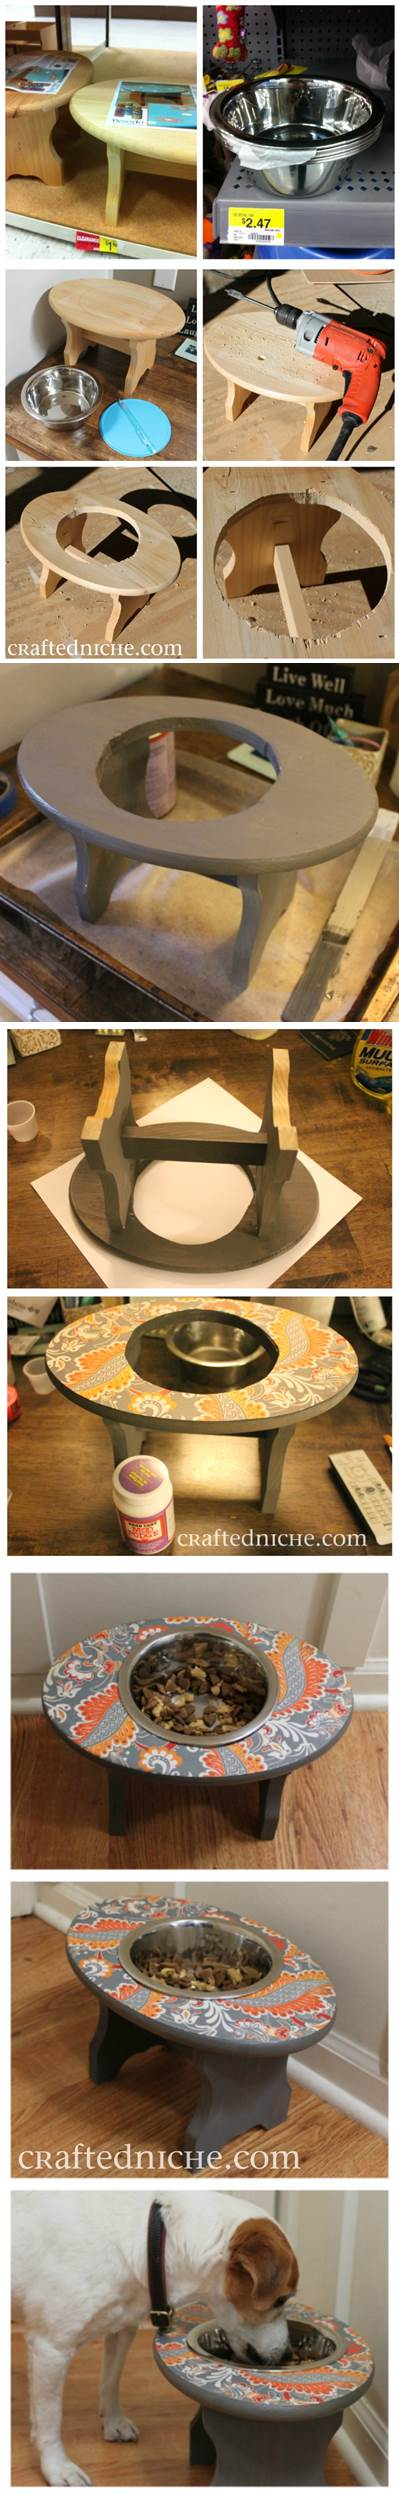 DIY Super Simple Dog Feeder 2